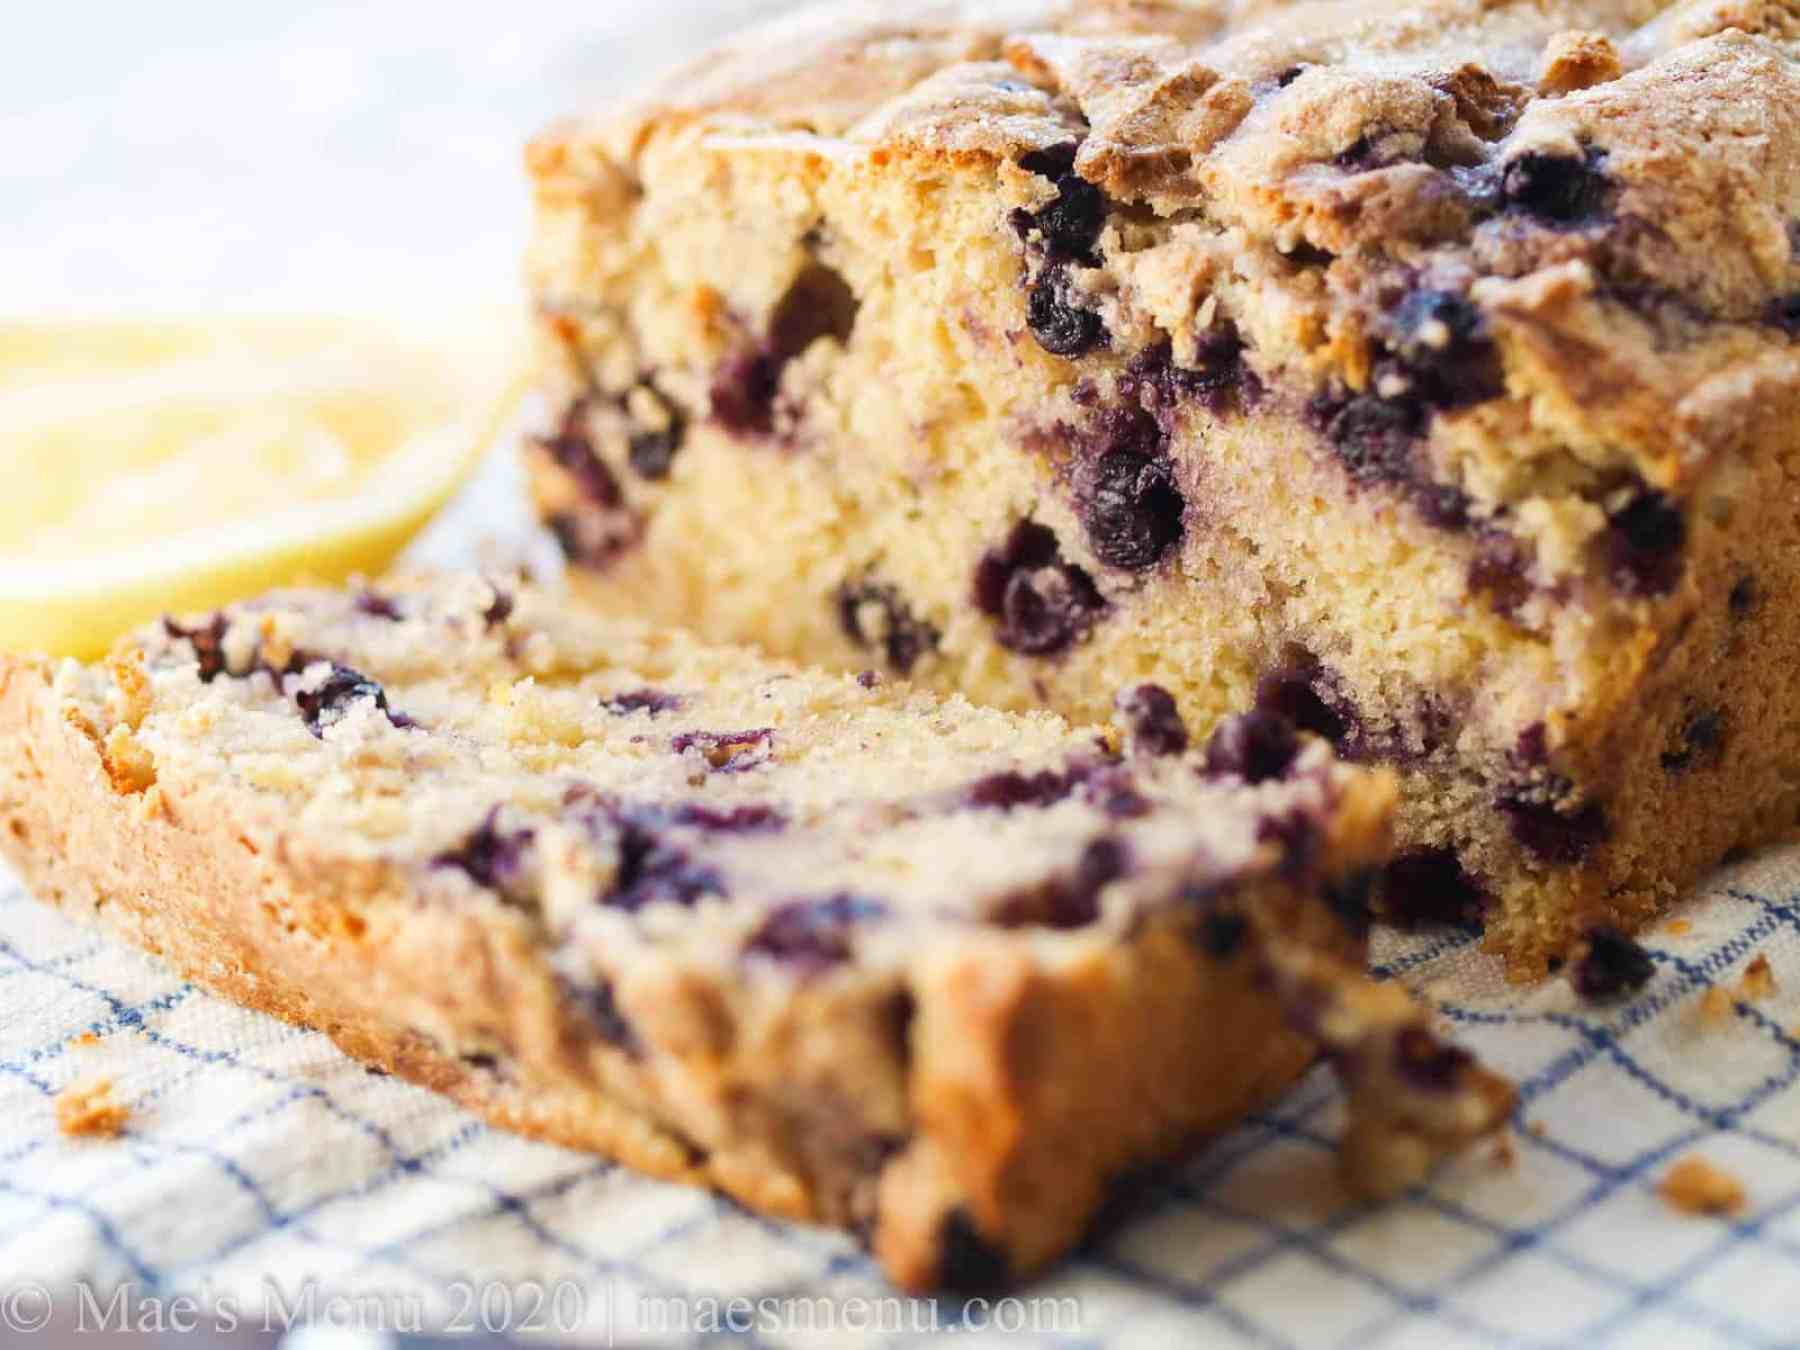 Up close shot of lemon blueberry muffin bread.